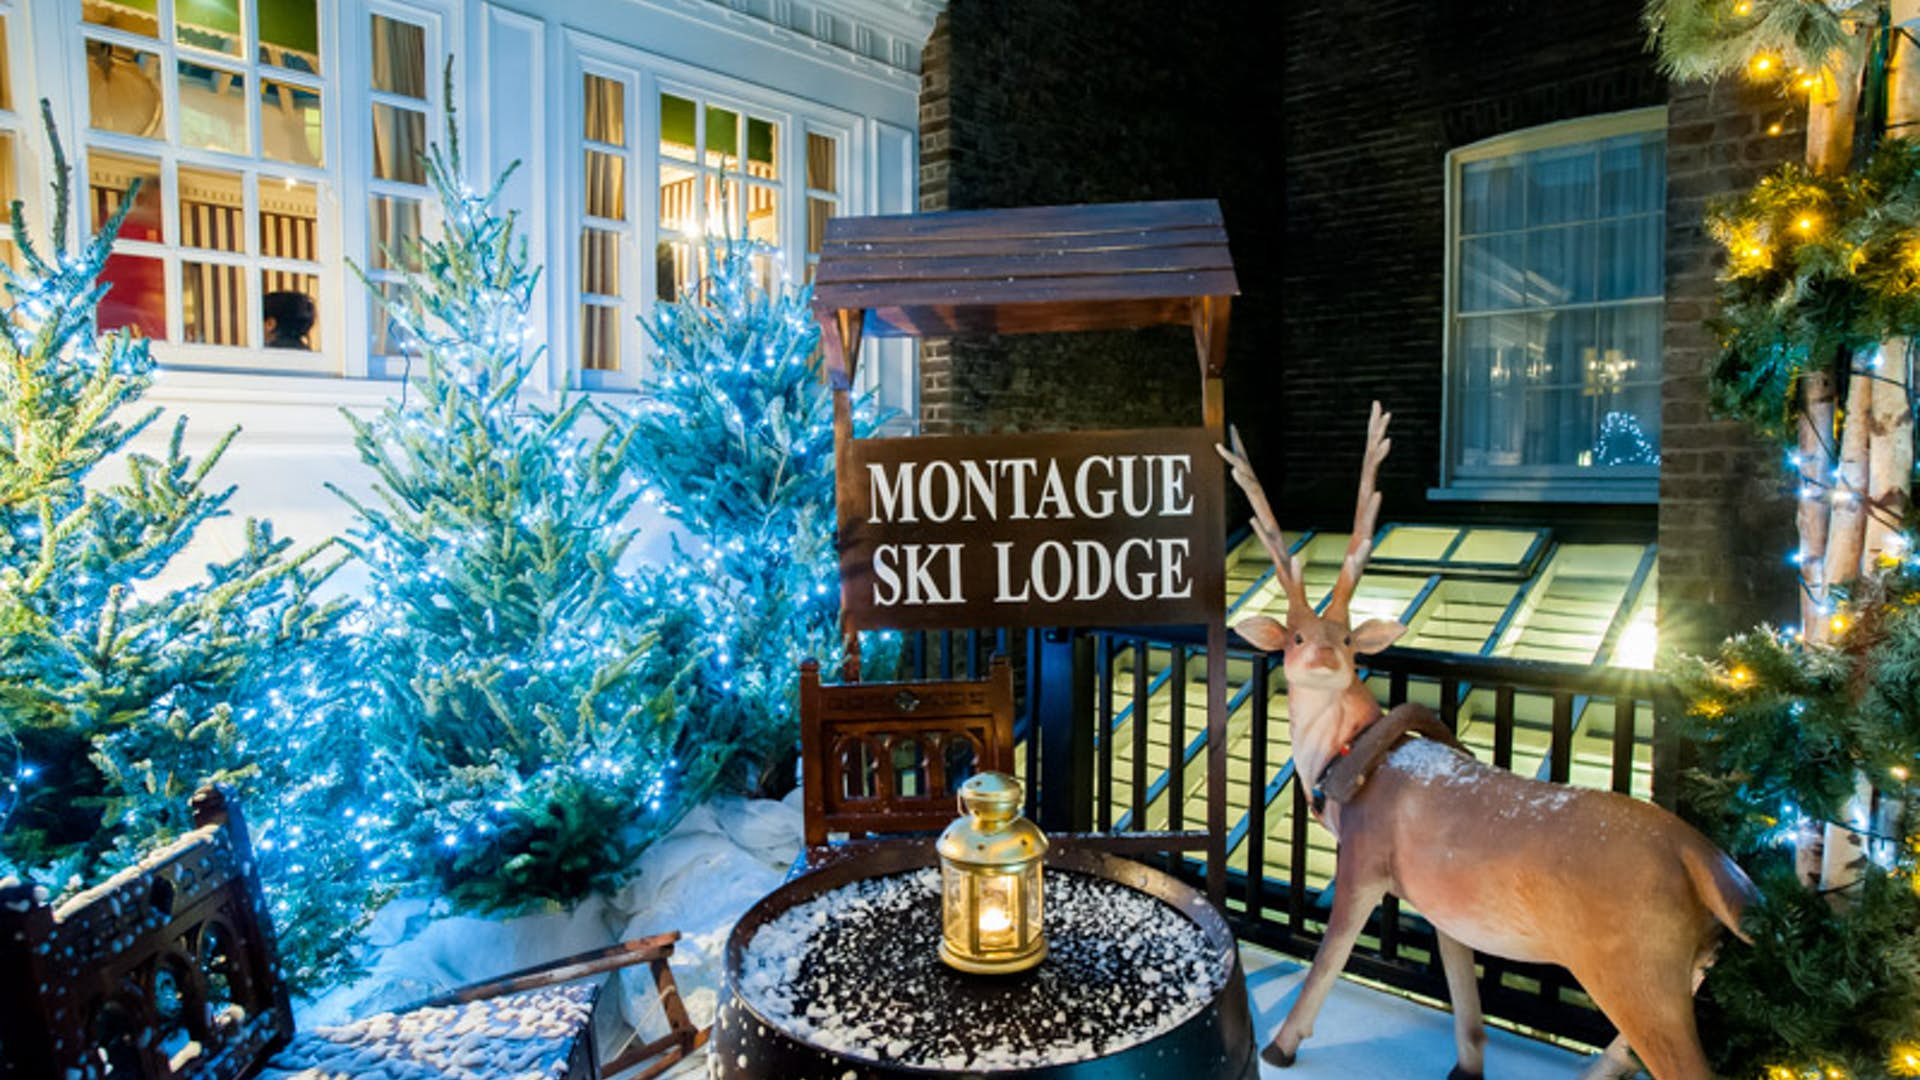 Montague ski lodge events montague on the gardens for The montague